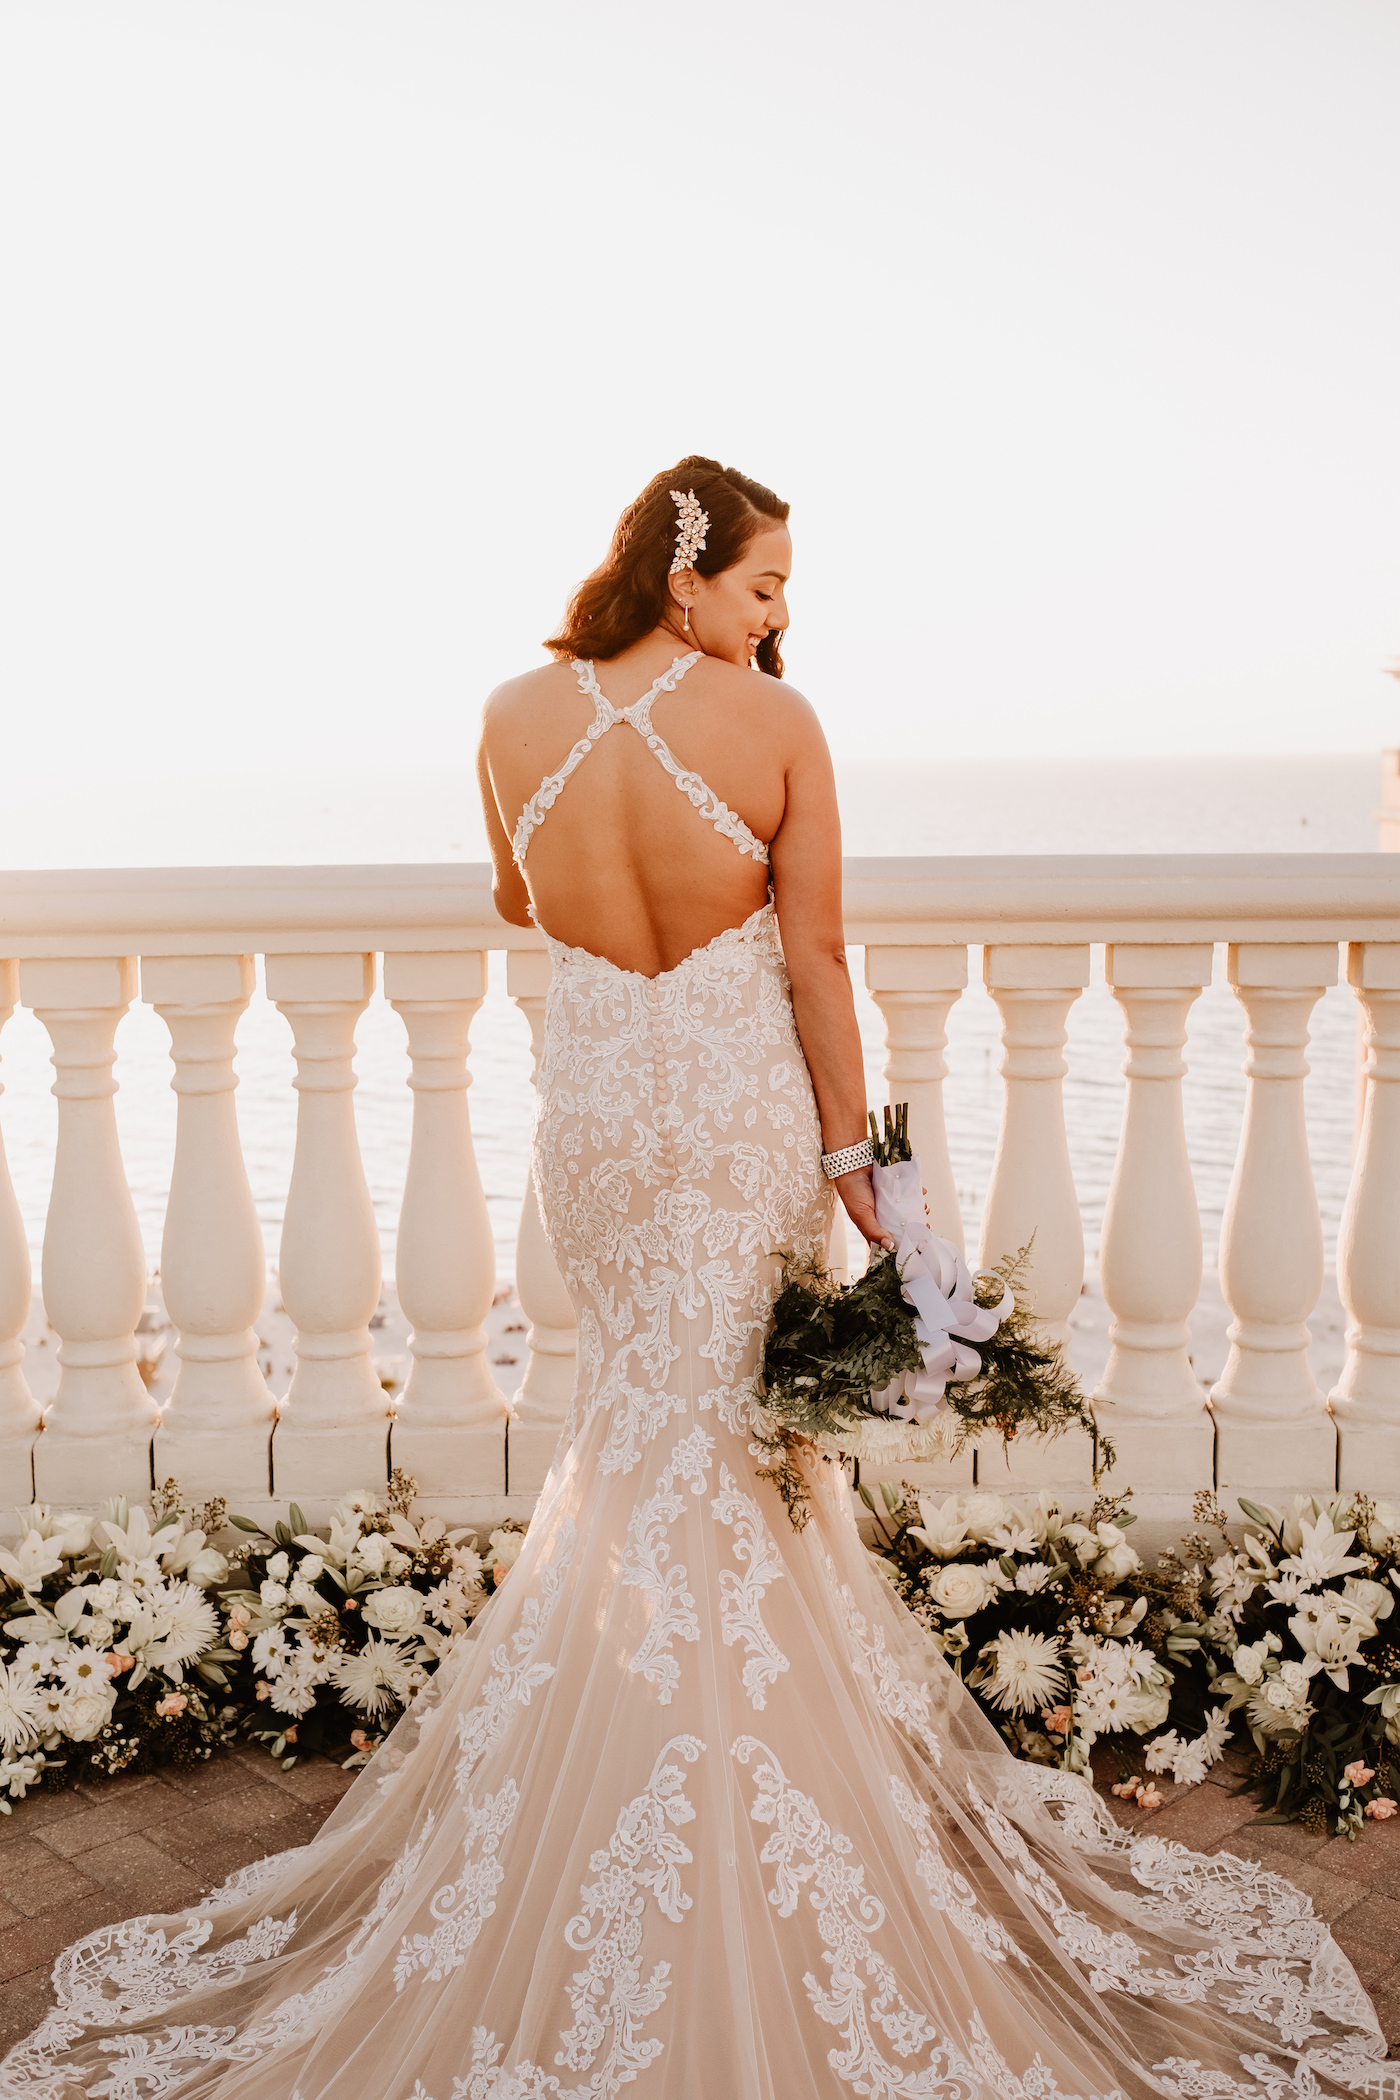 Sunset Bridal Portrait   Champagne Lace Sheath Illusion Neck Bridal Gown with Criss Cross Back Straps   Clearwater Beach Wedding Bridal Portrait